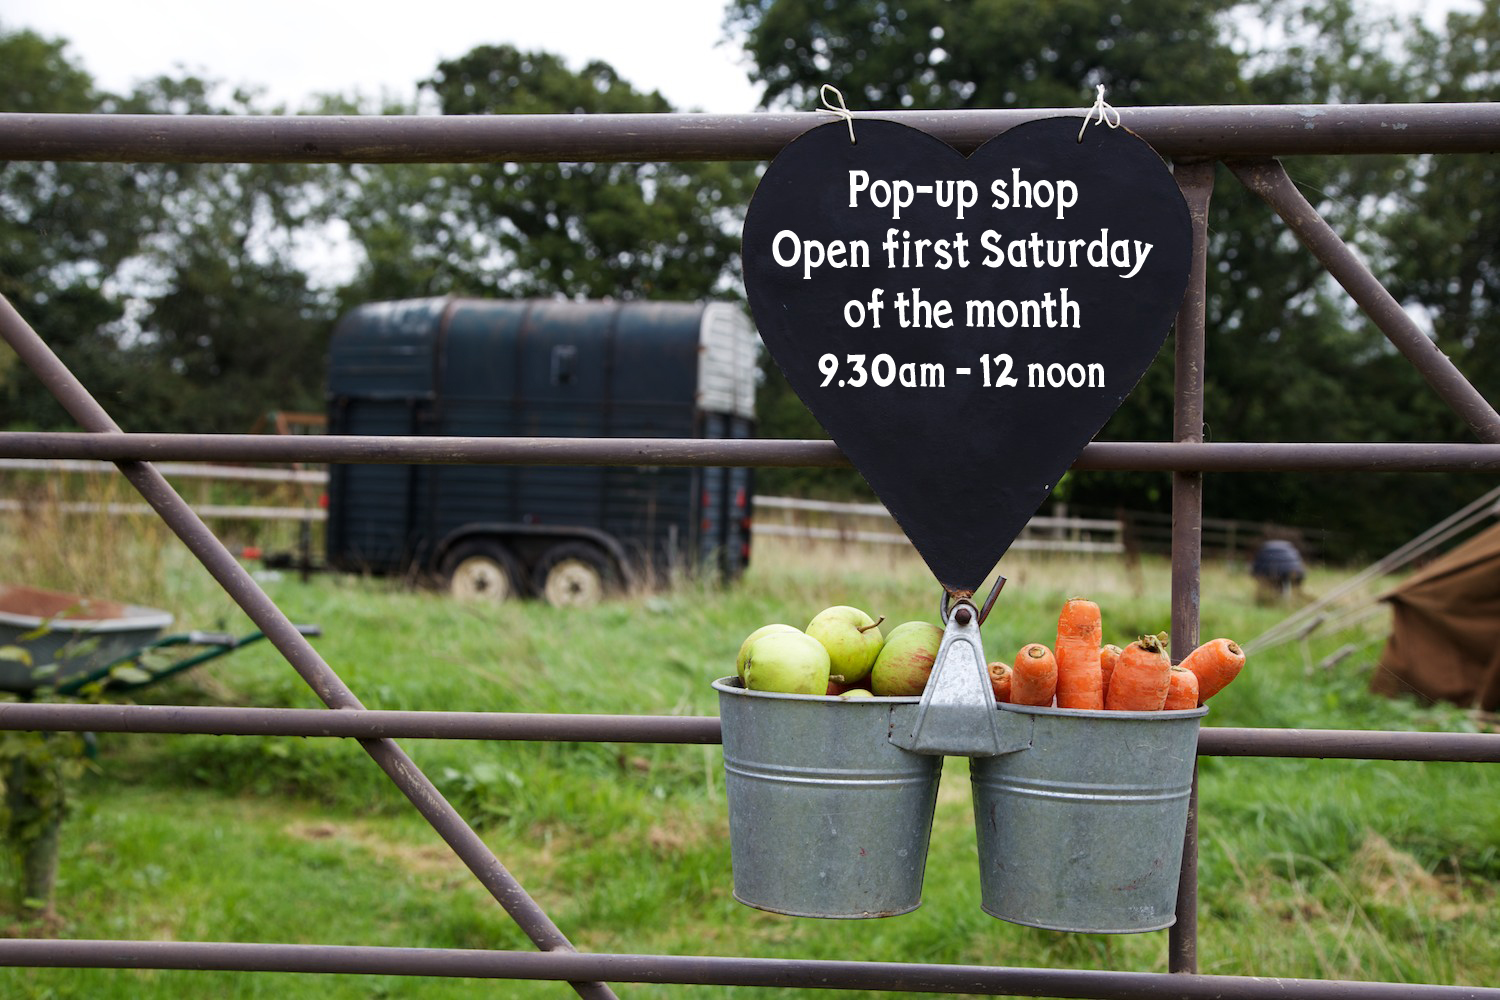 Metal farm gate with heart blackboard sign with pop up shop open times